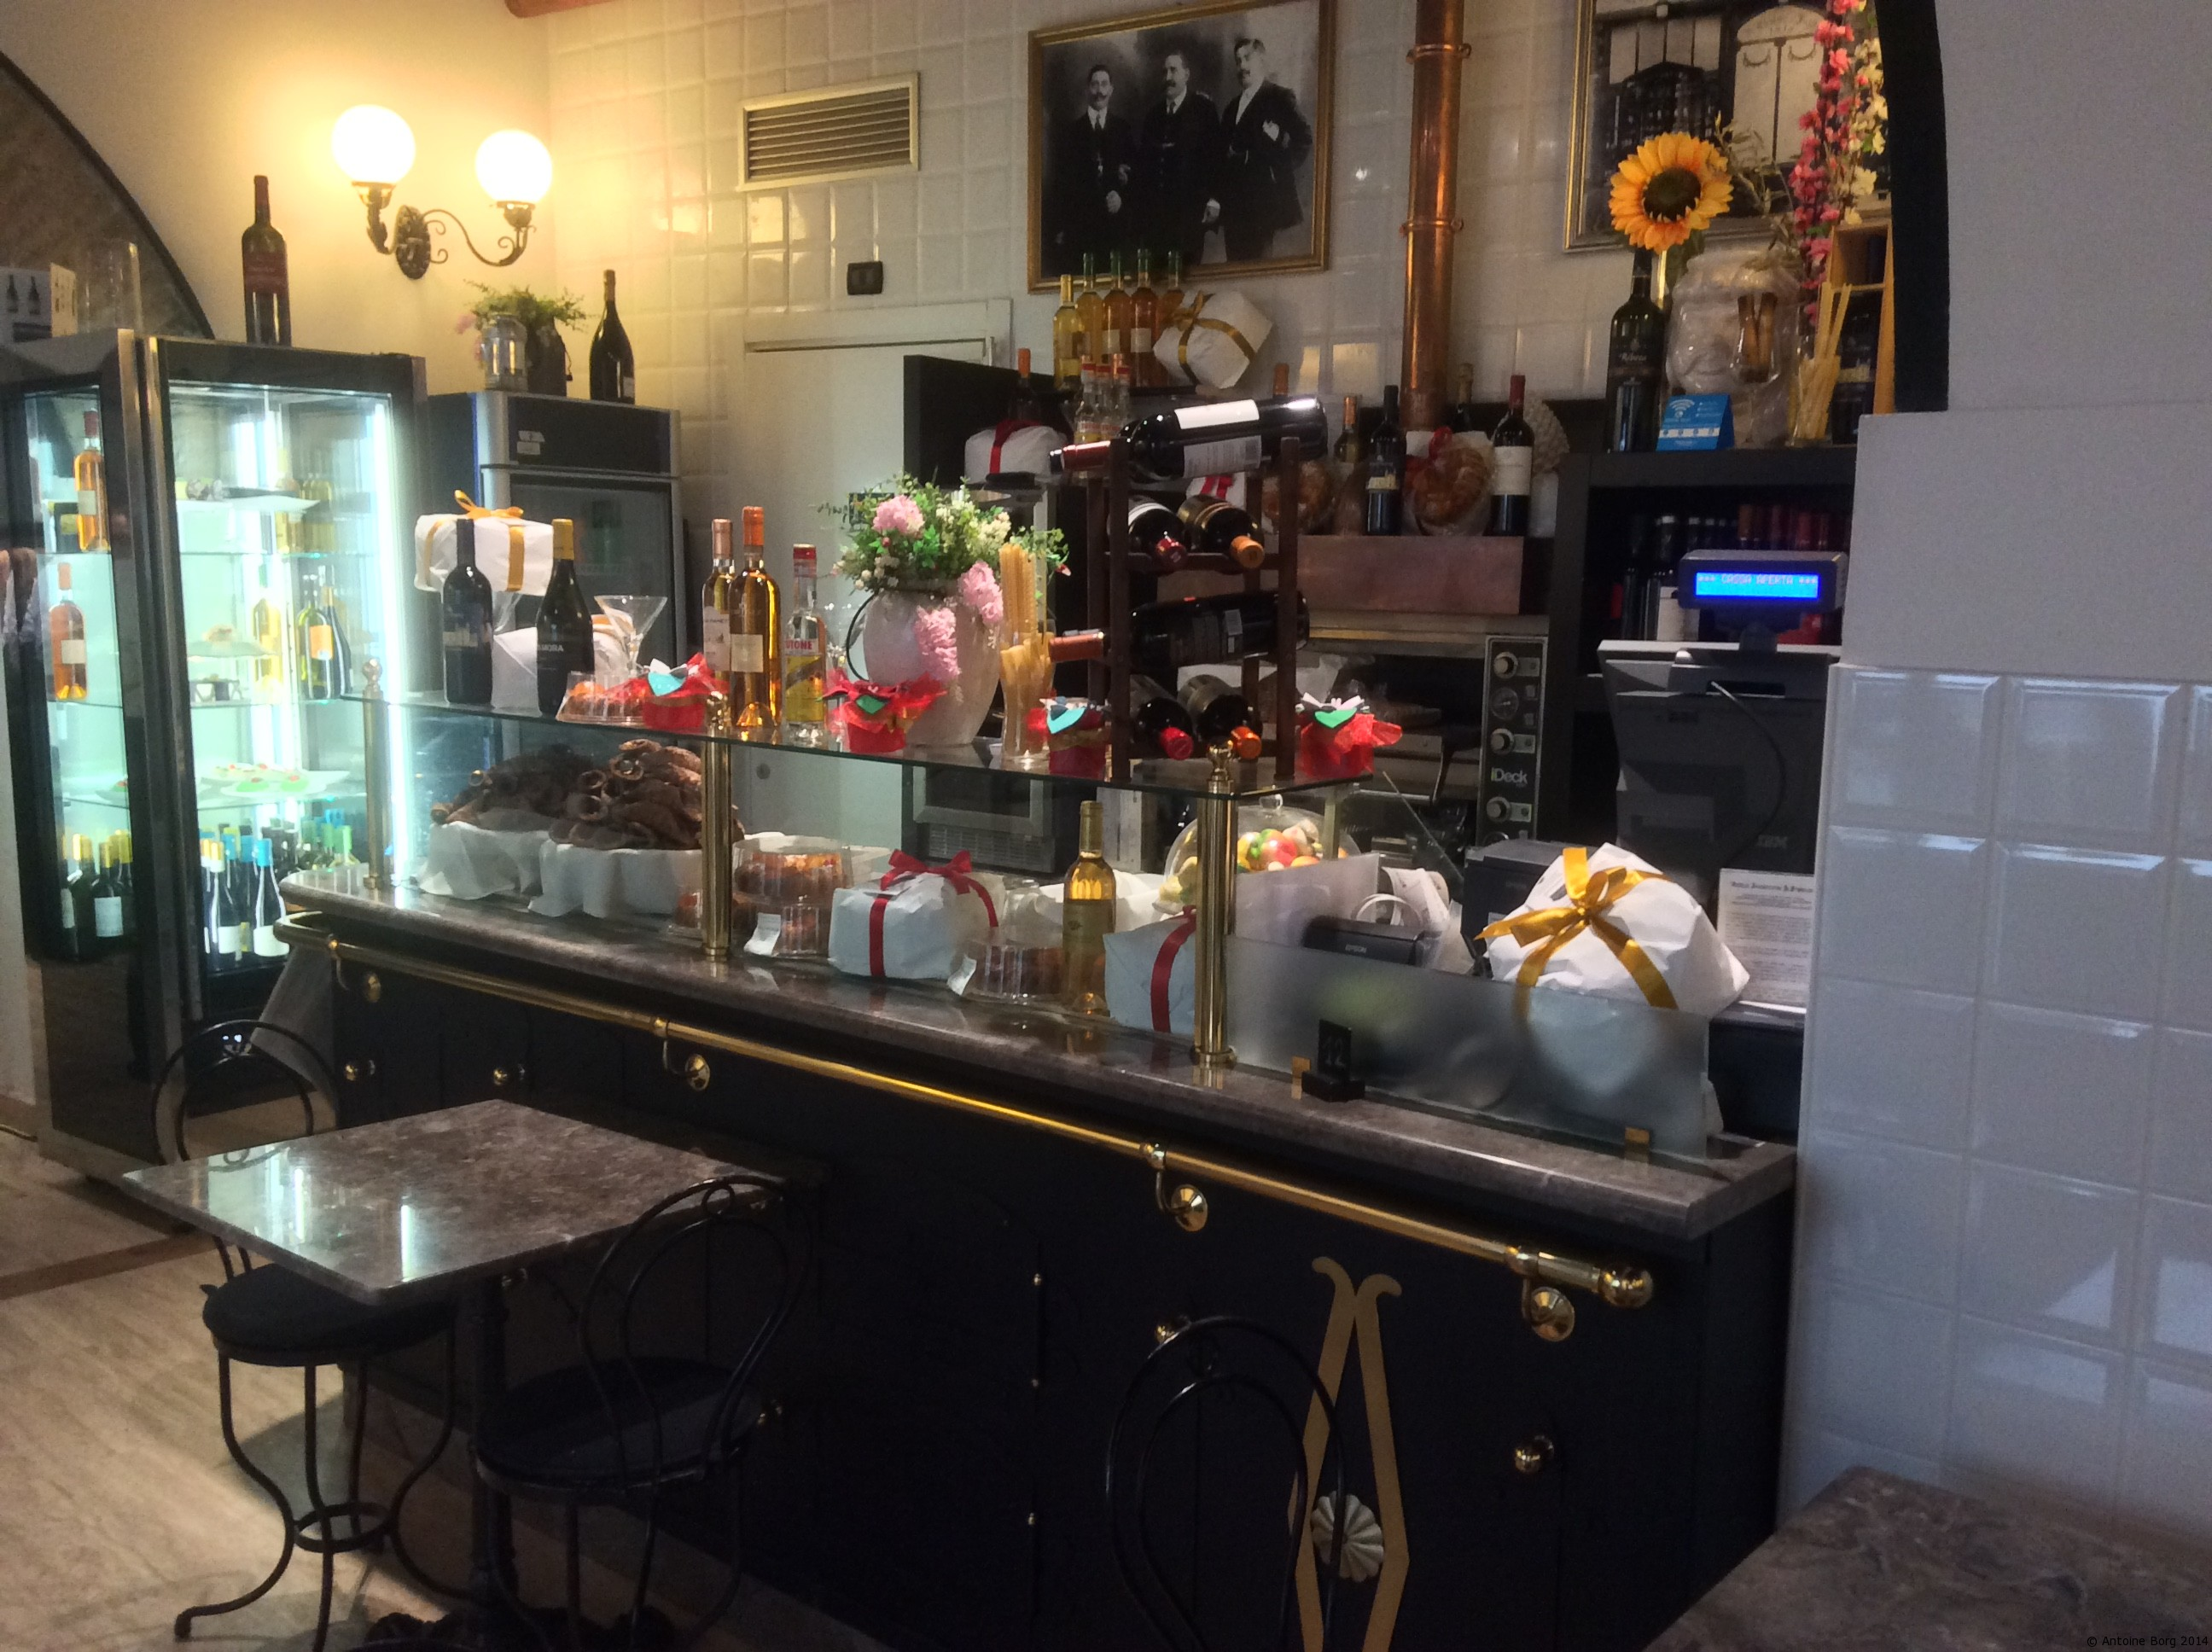 A photo of the biscuit display at Antica Focacceria San Francesco